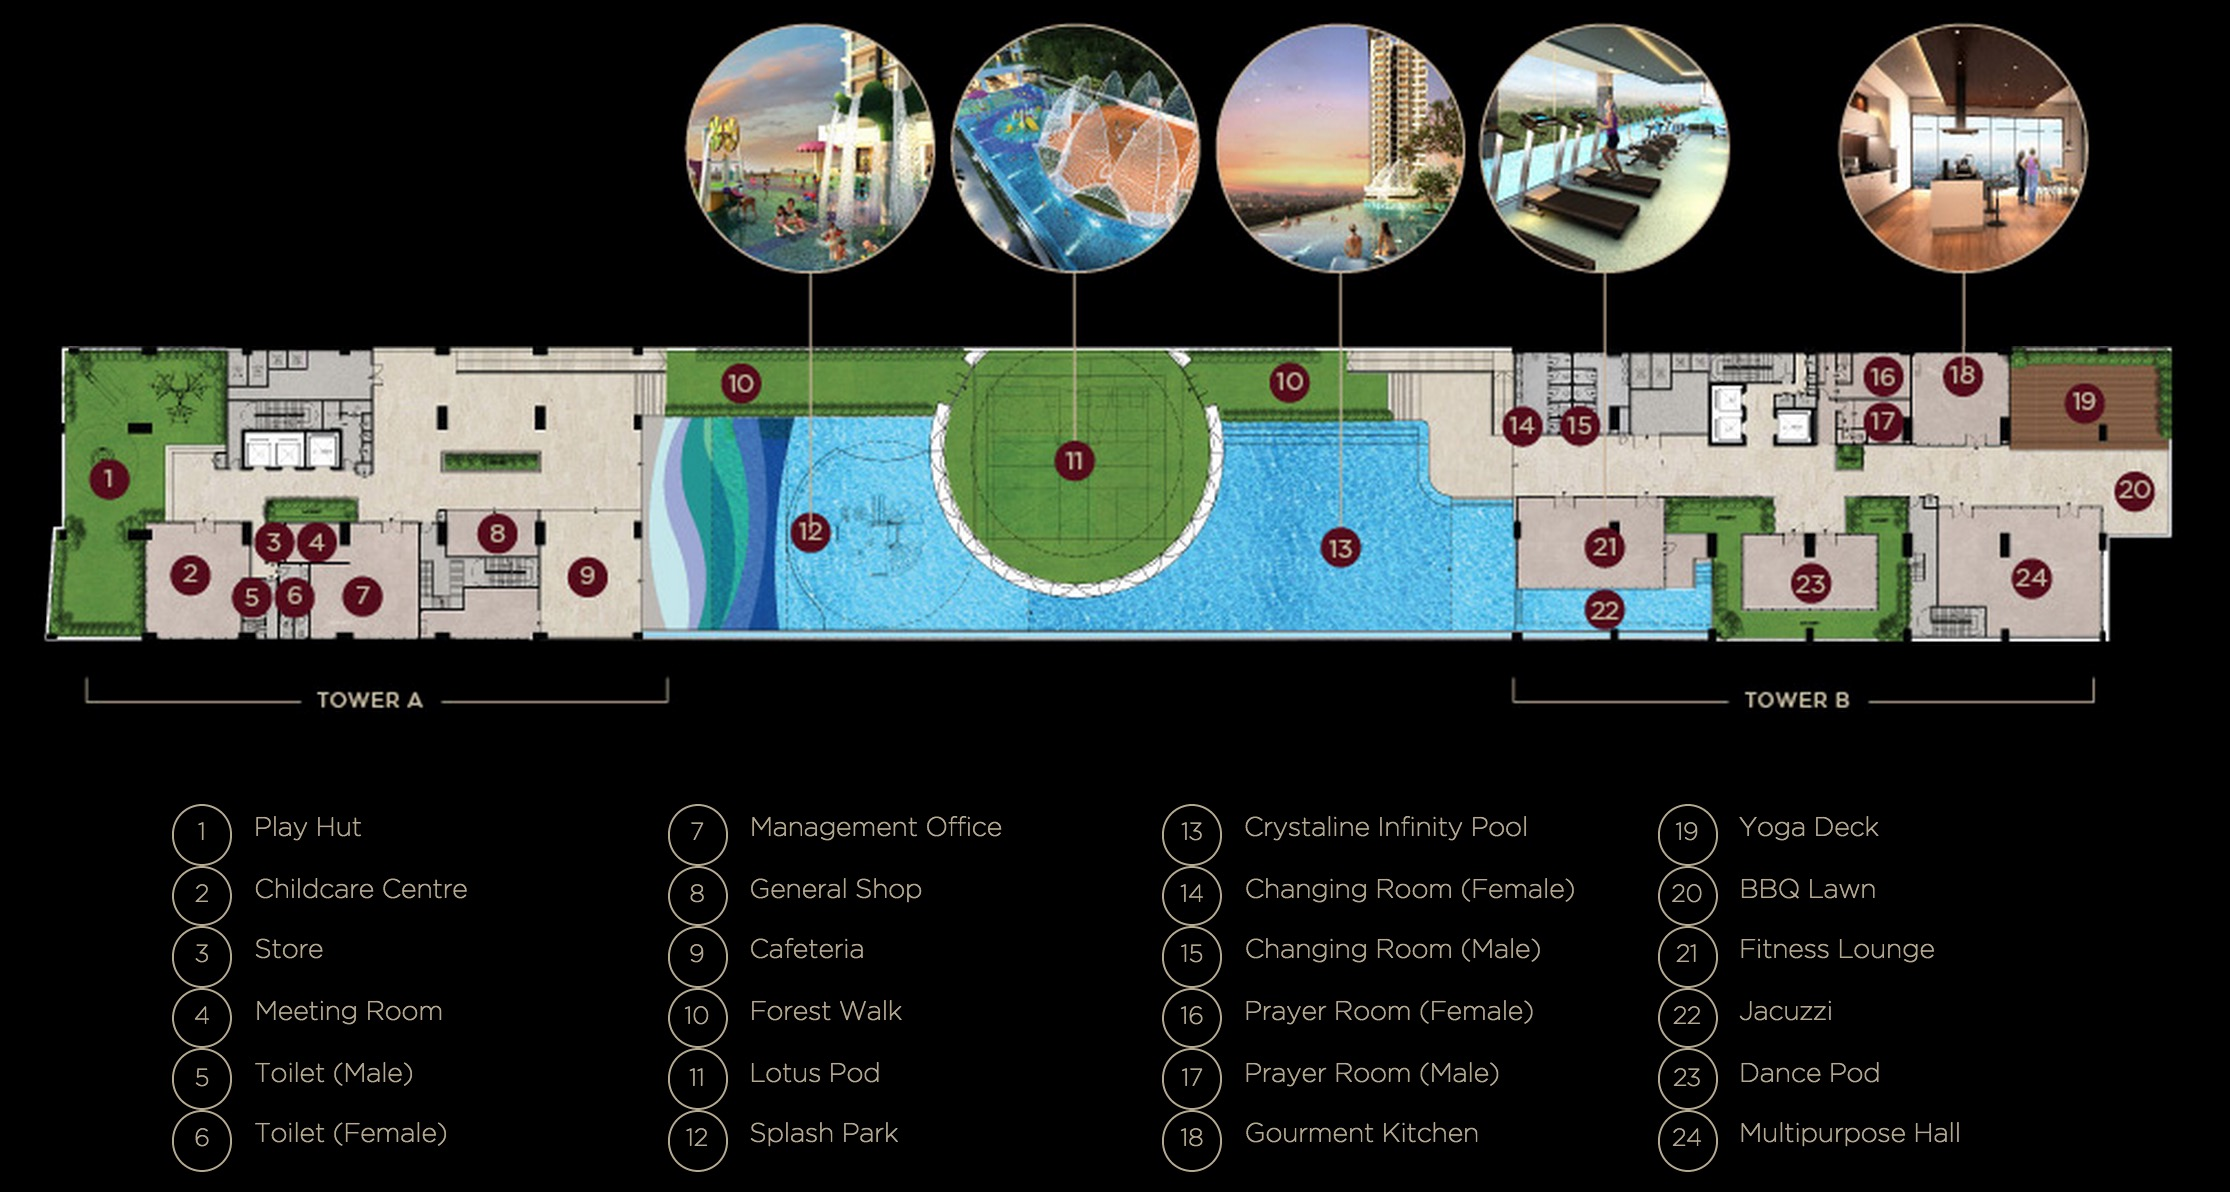 Site Plan of Twinz Residences